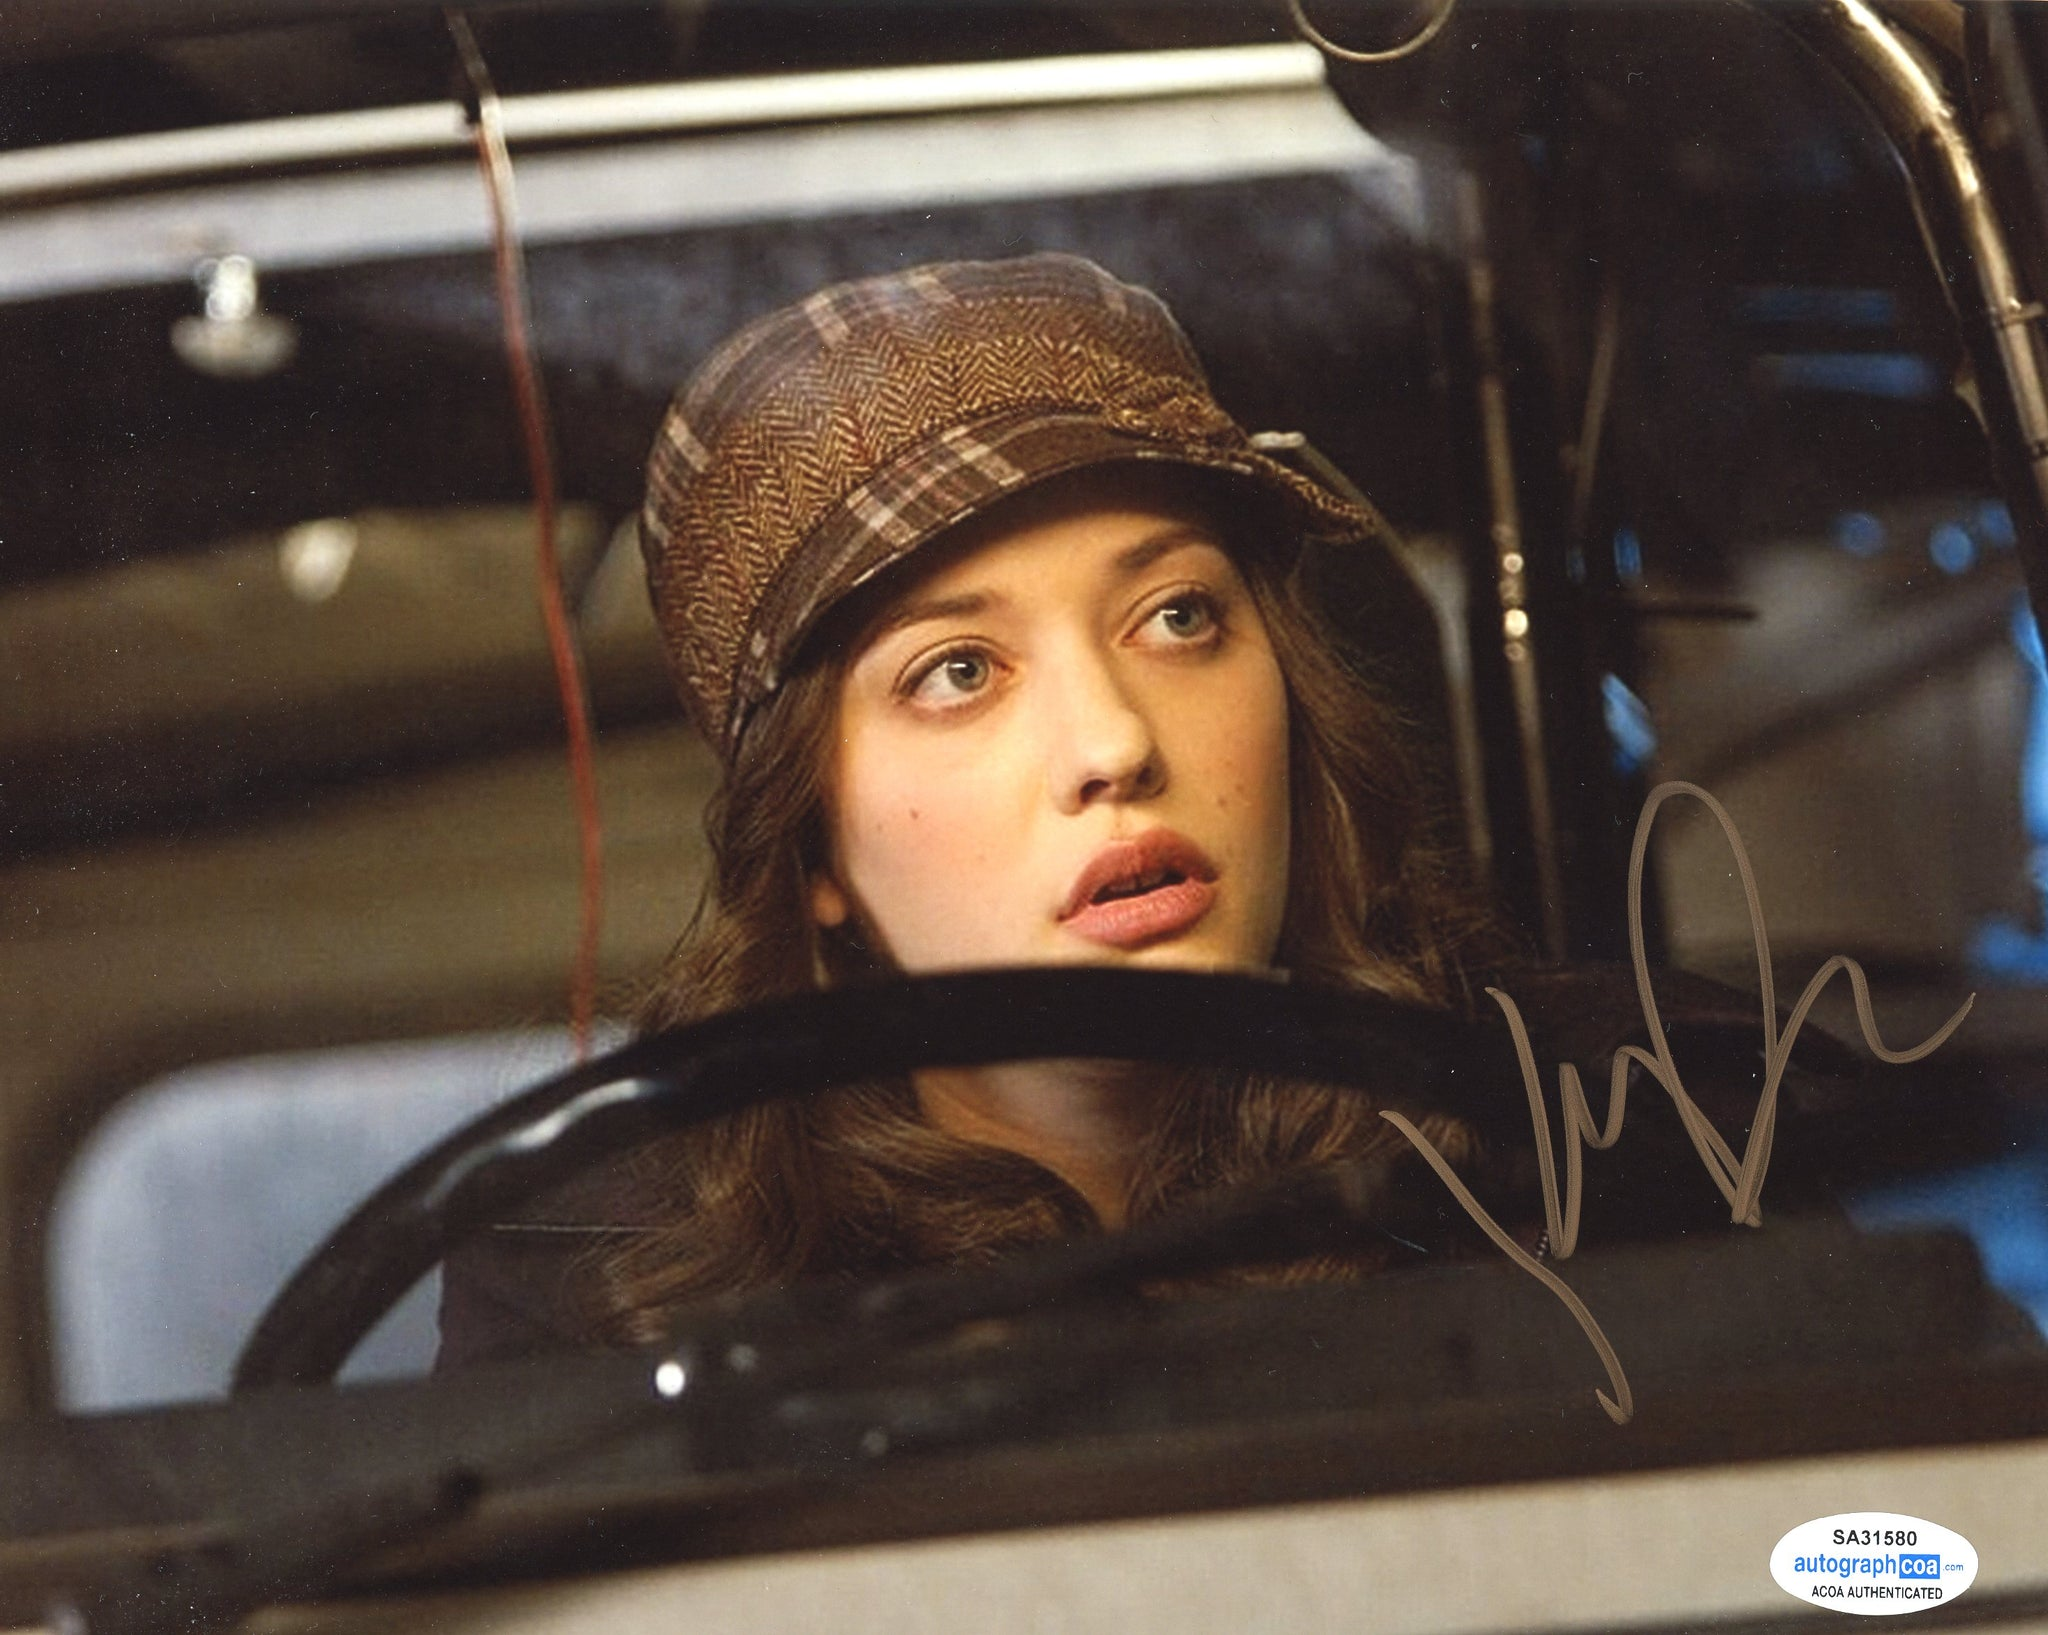 Kat Dennings Thor Avengers Signed Autograph 8x10 Photo ACOA